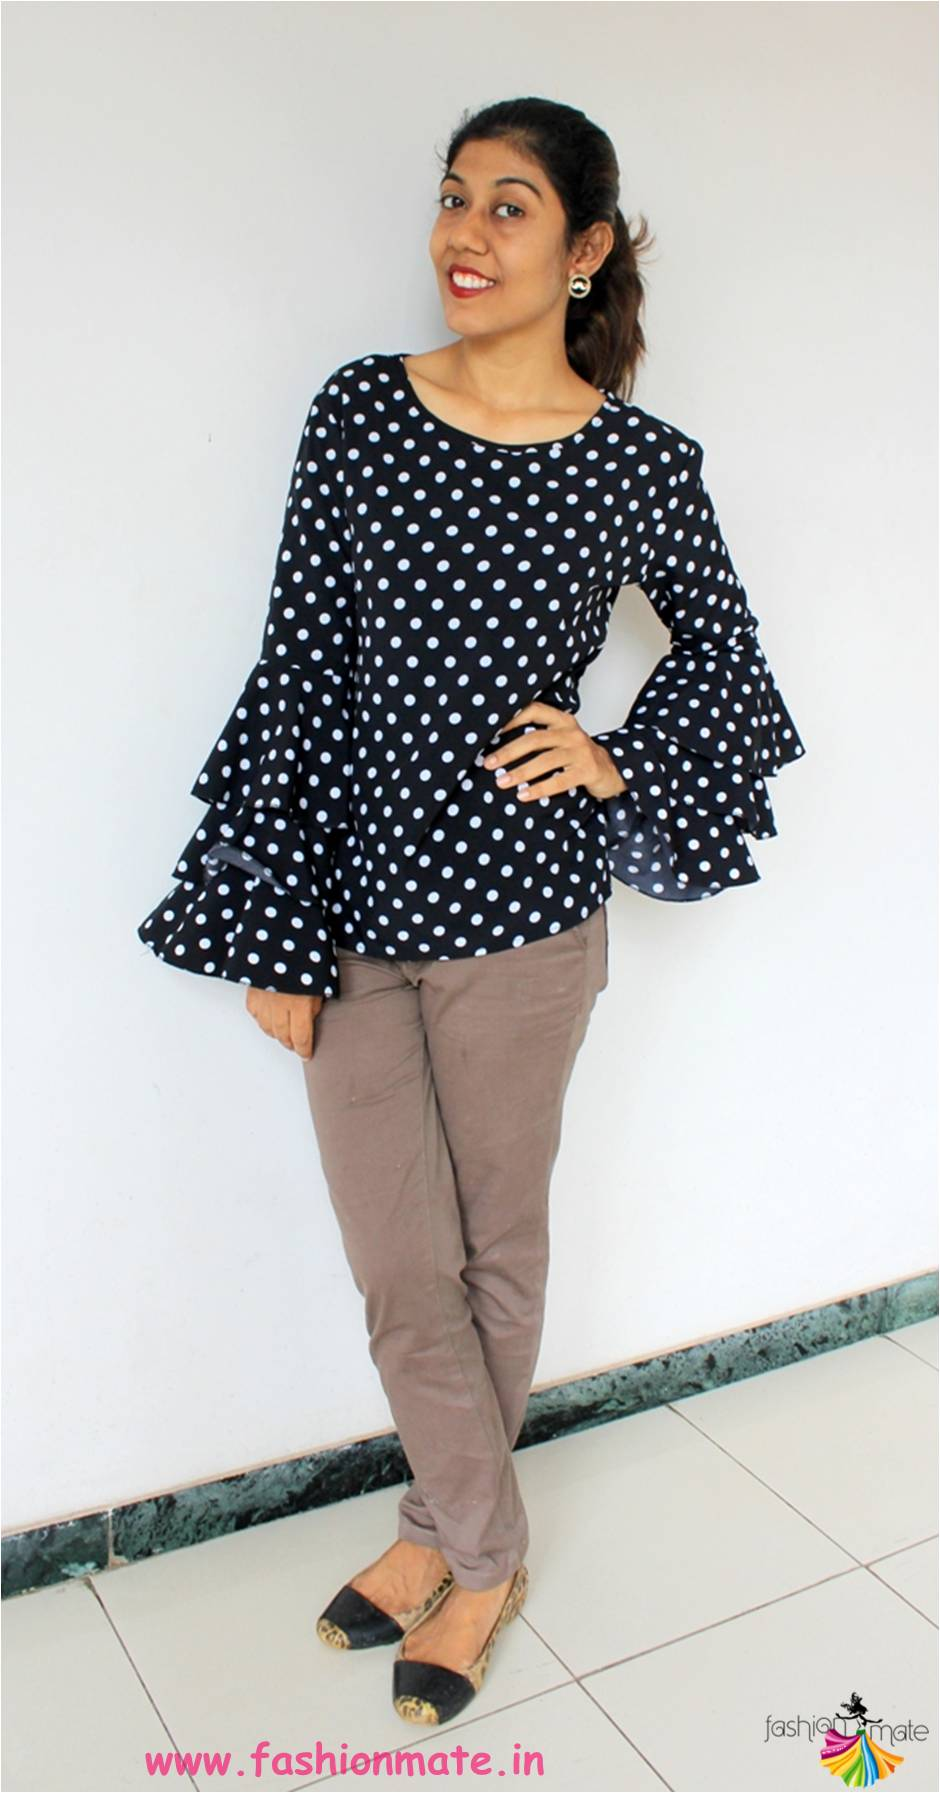 f5db3f23cc0a08 comfort style 2018 - polka dot bell sleeves top trend